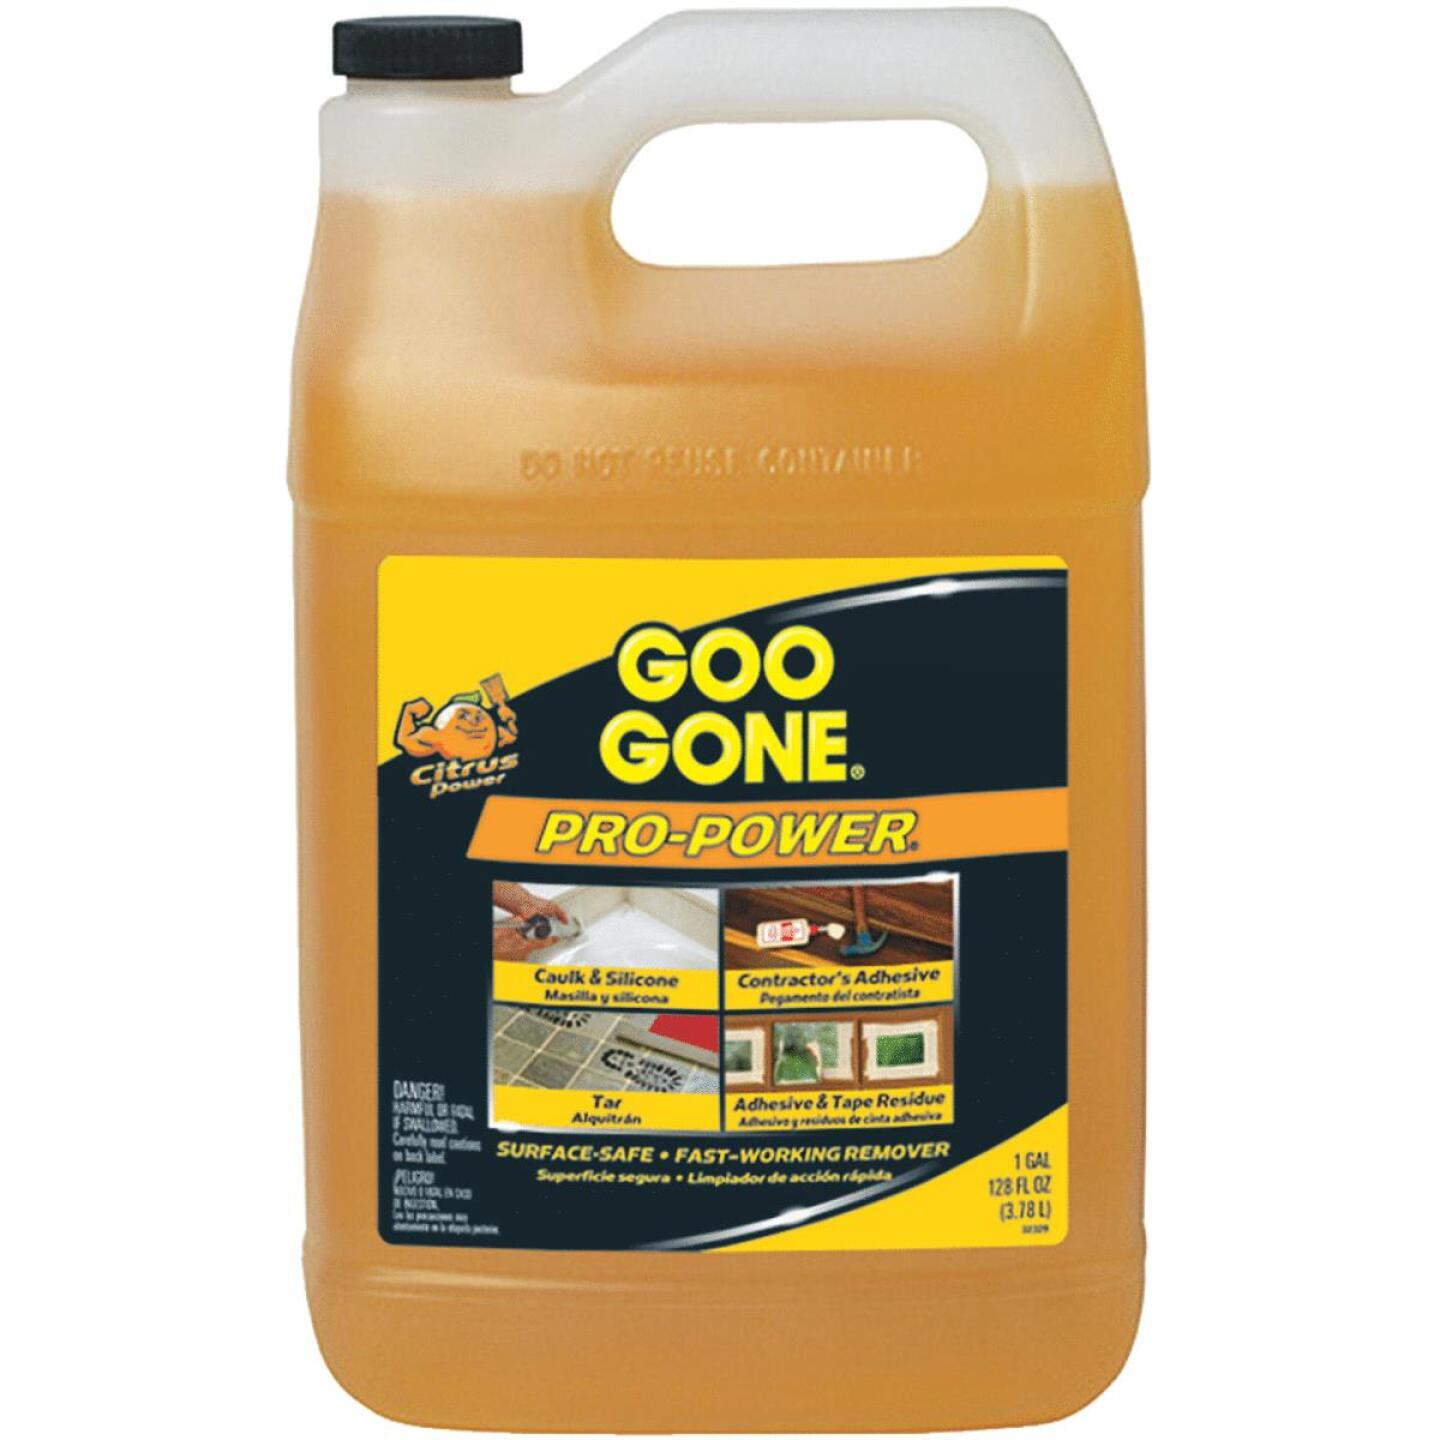 Goo Gone 1 Gal. Pro-Power Adhesive Remover Image 14